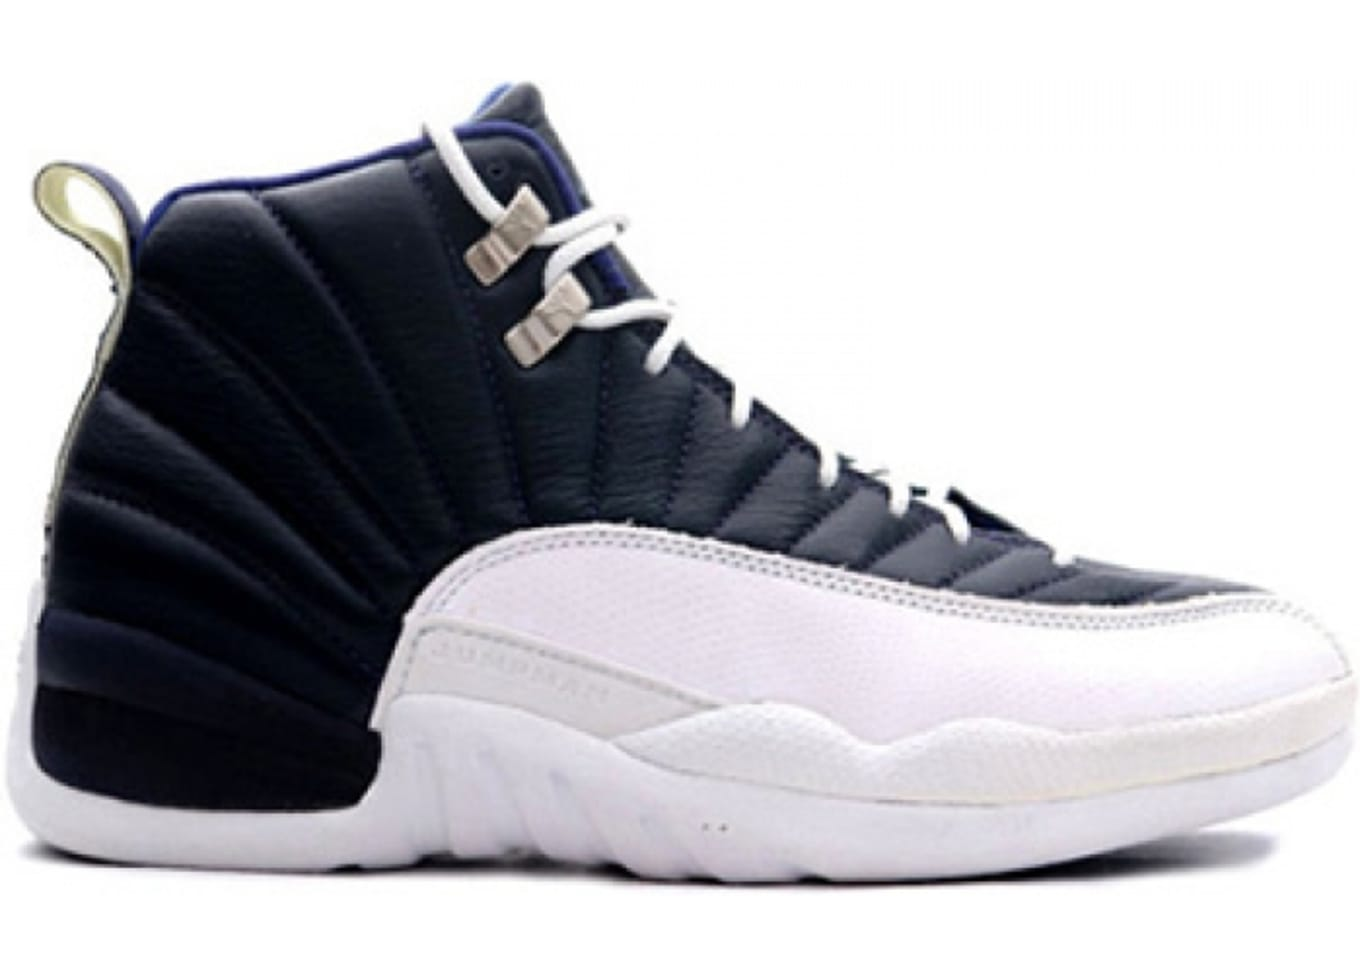 check out d5772 d13d7 Air Jordan 12